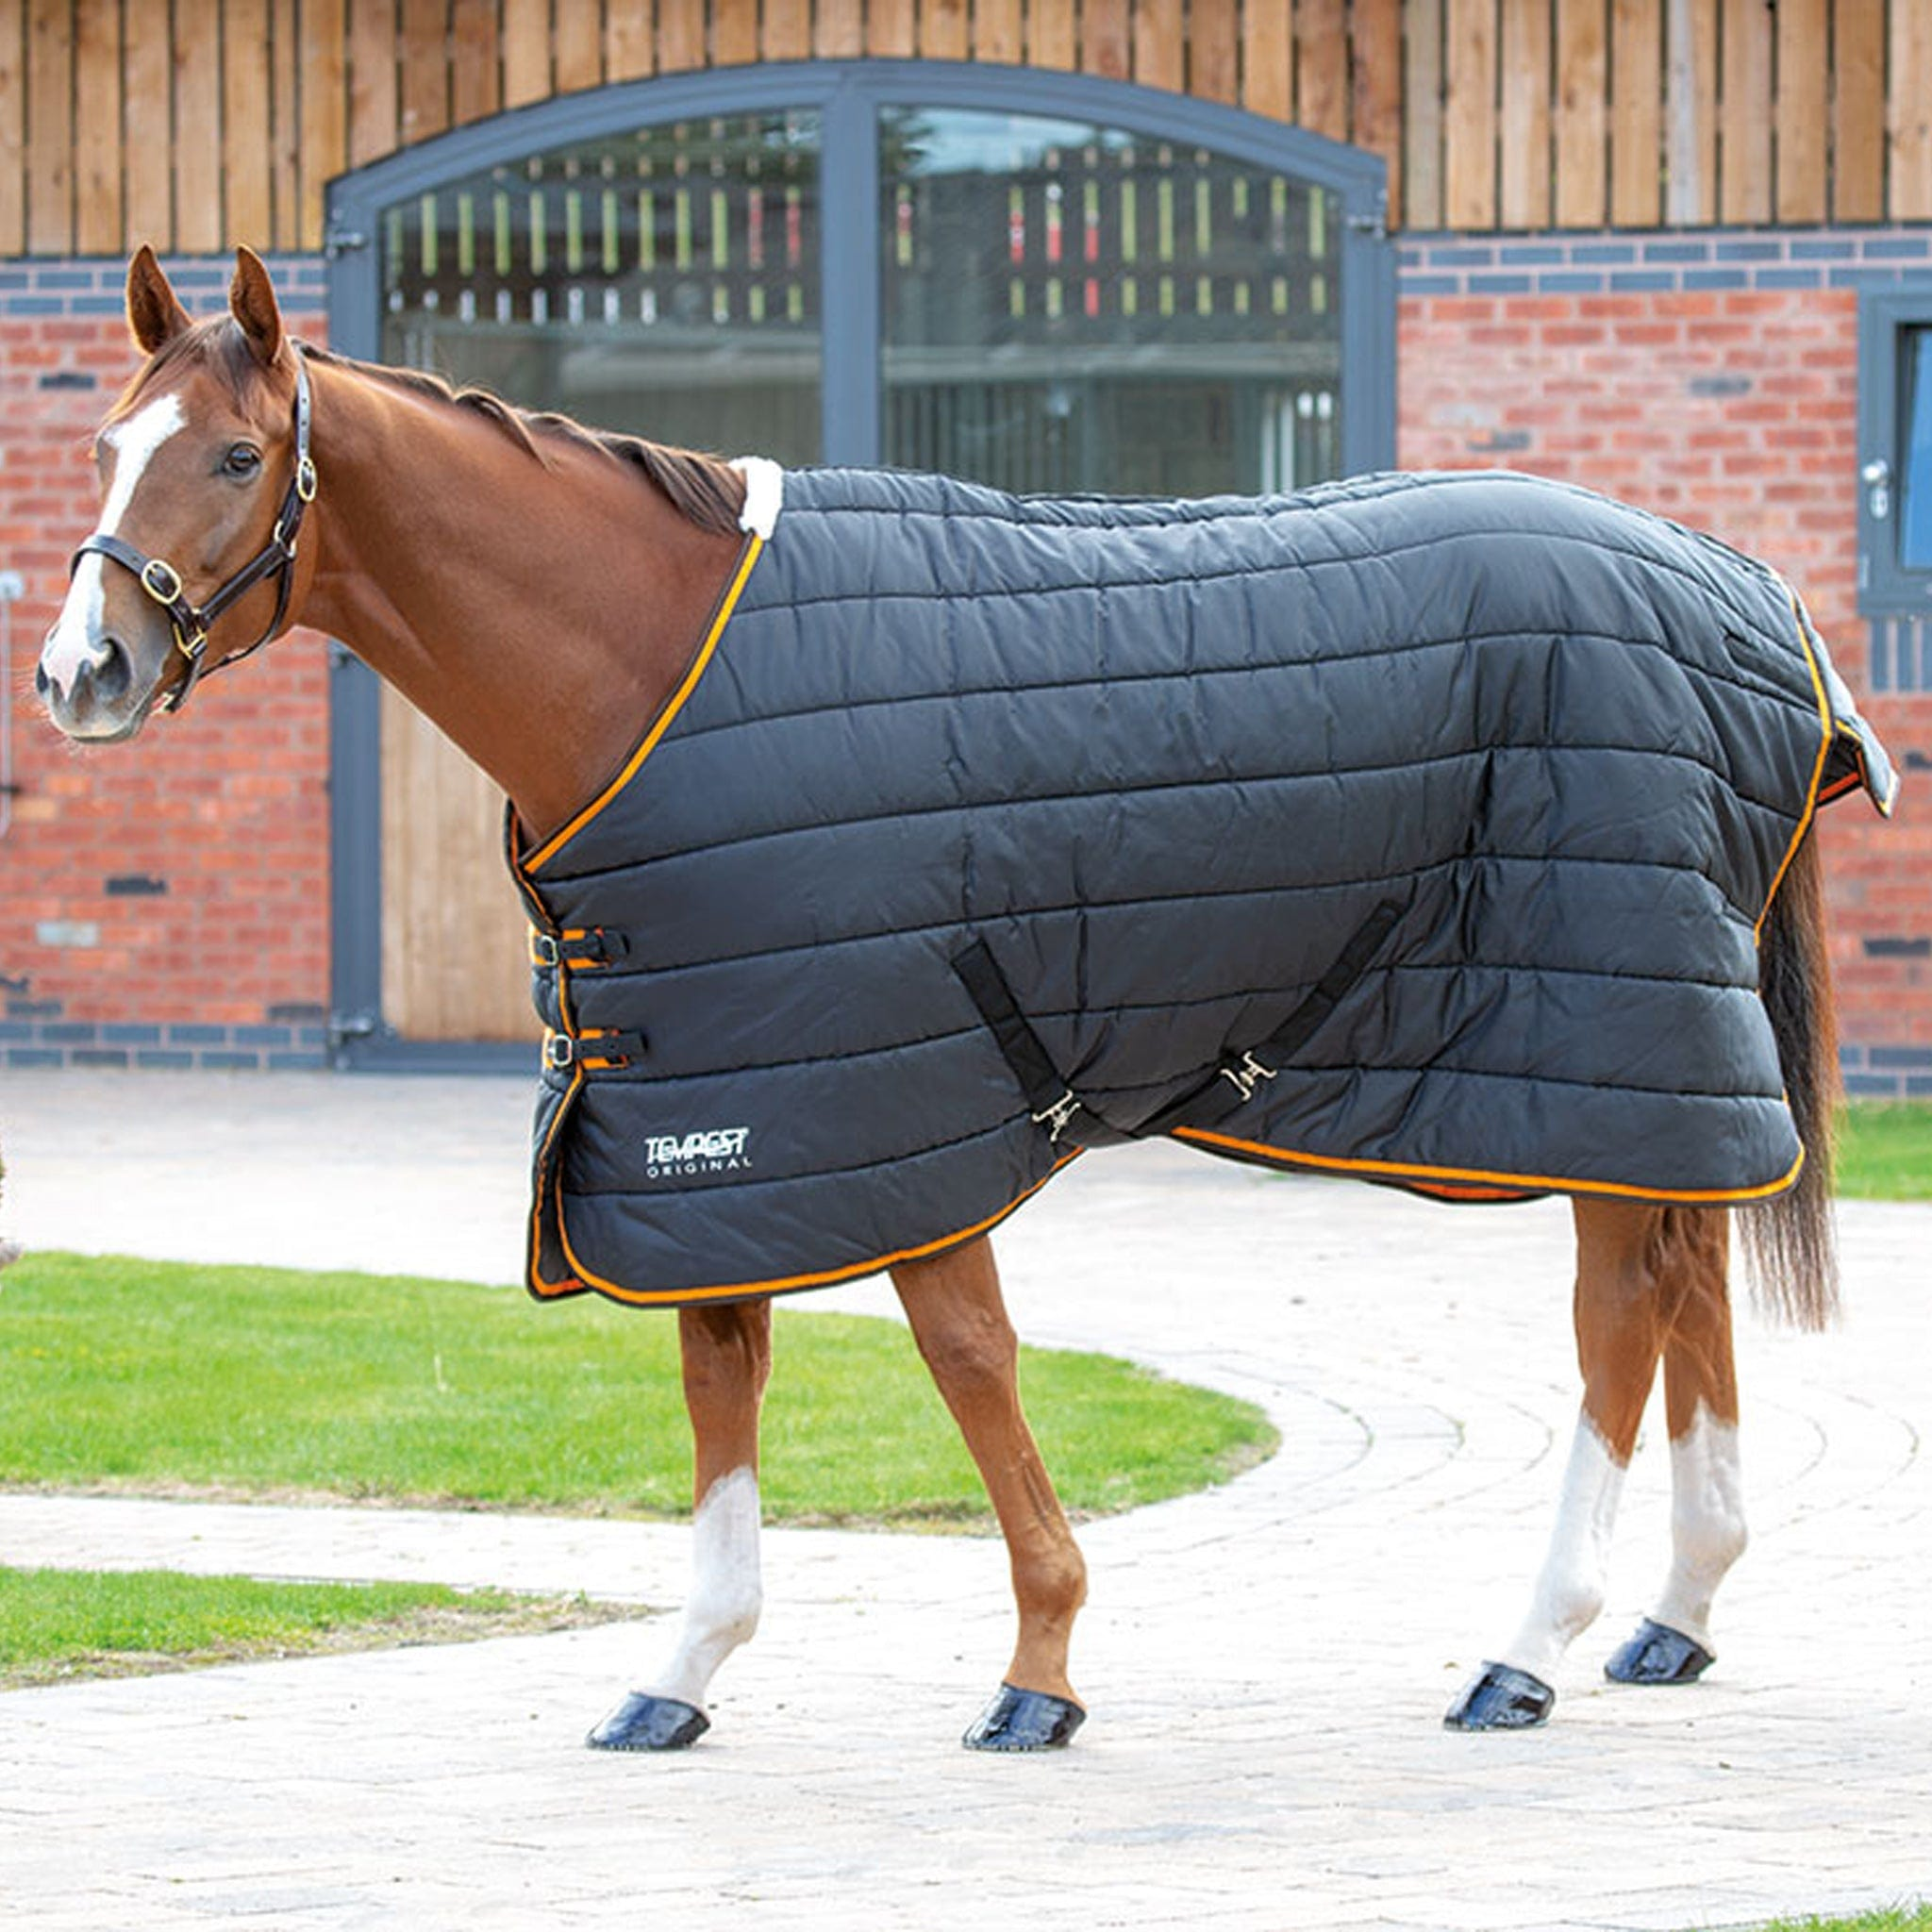 Shires Tempest Original Heavyweight 300g Standard Neck Stable Rug Black And Orange 9340.